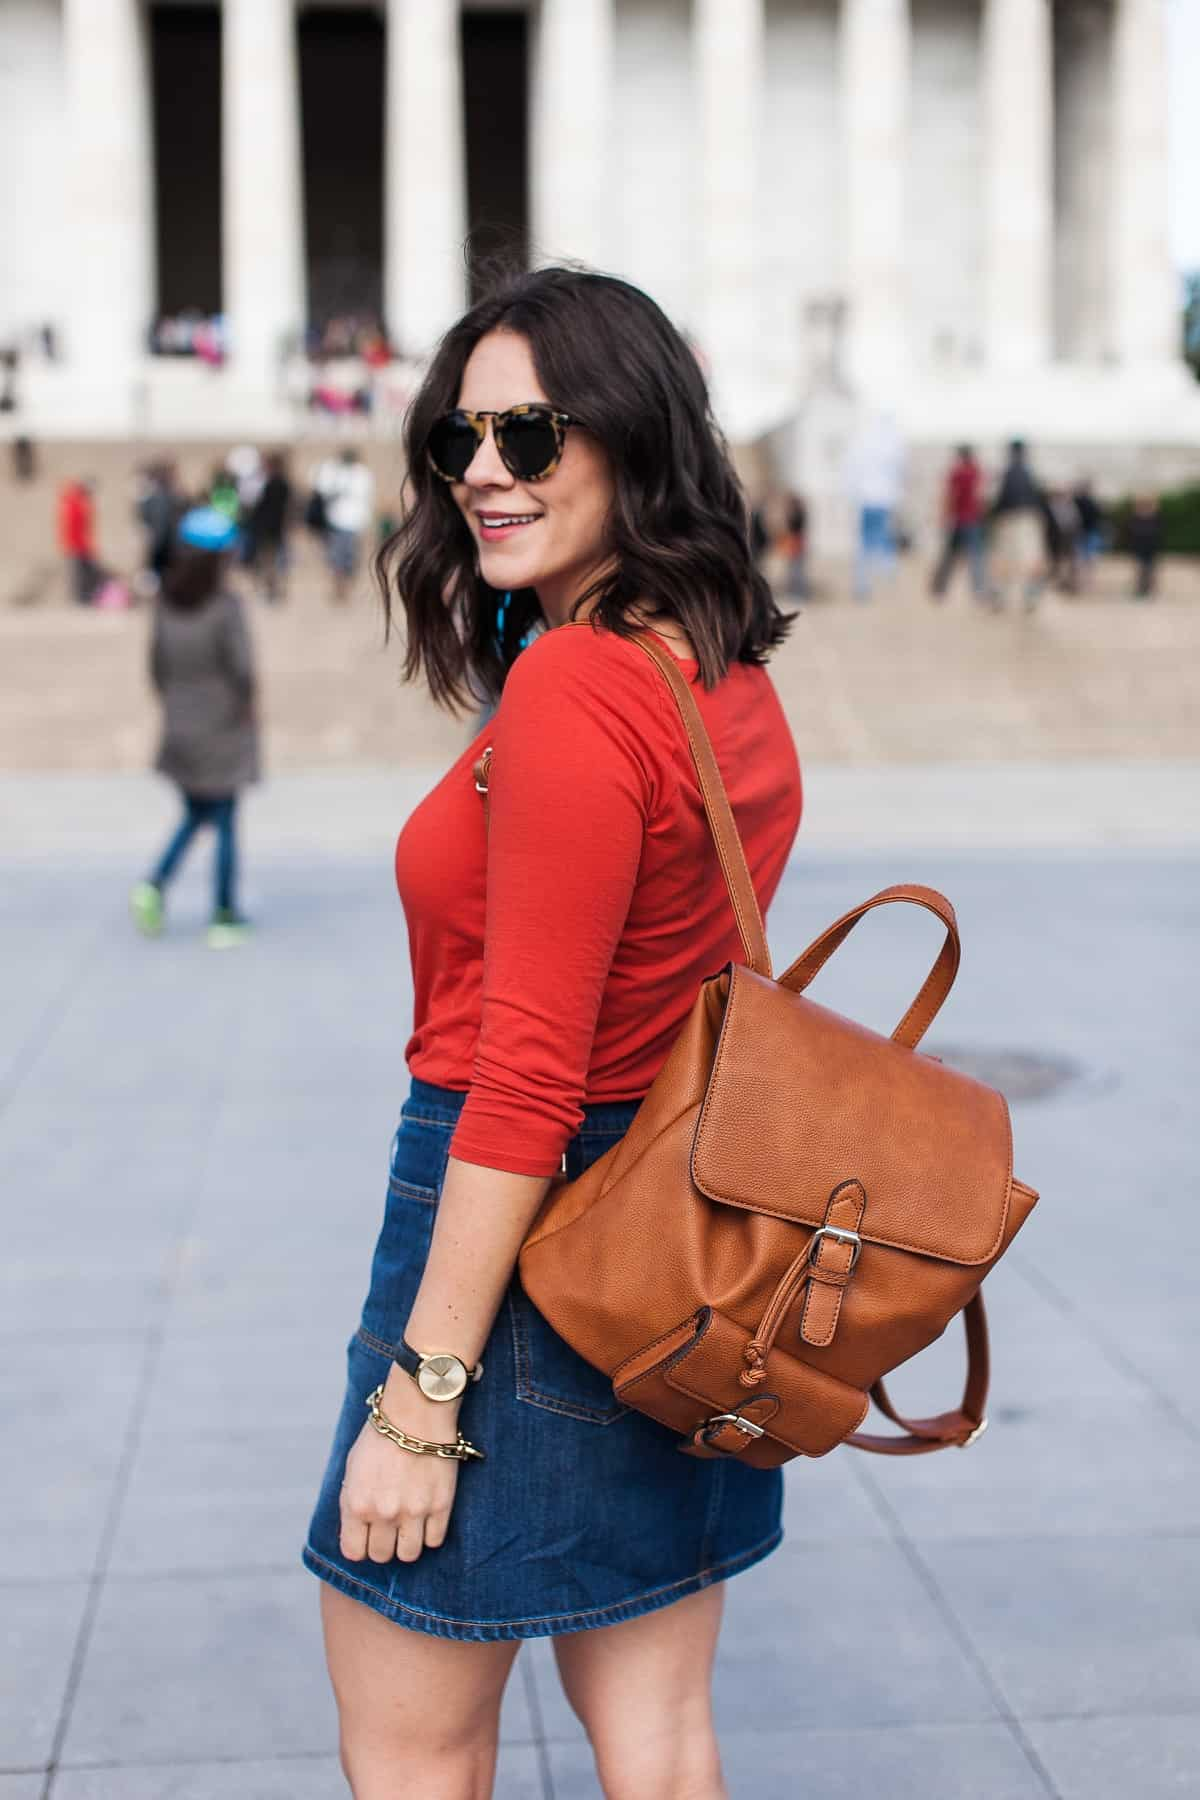 travel outfit ideas - how to travel while still looking cute - My Style Vita @mystylevita - 6